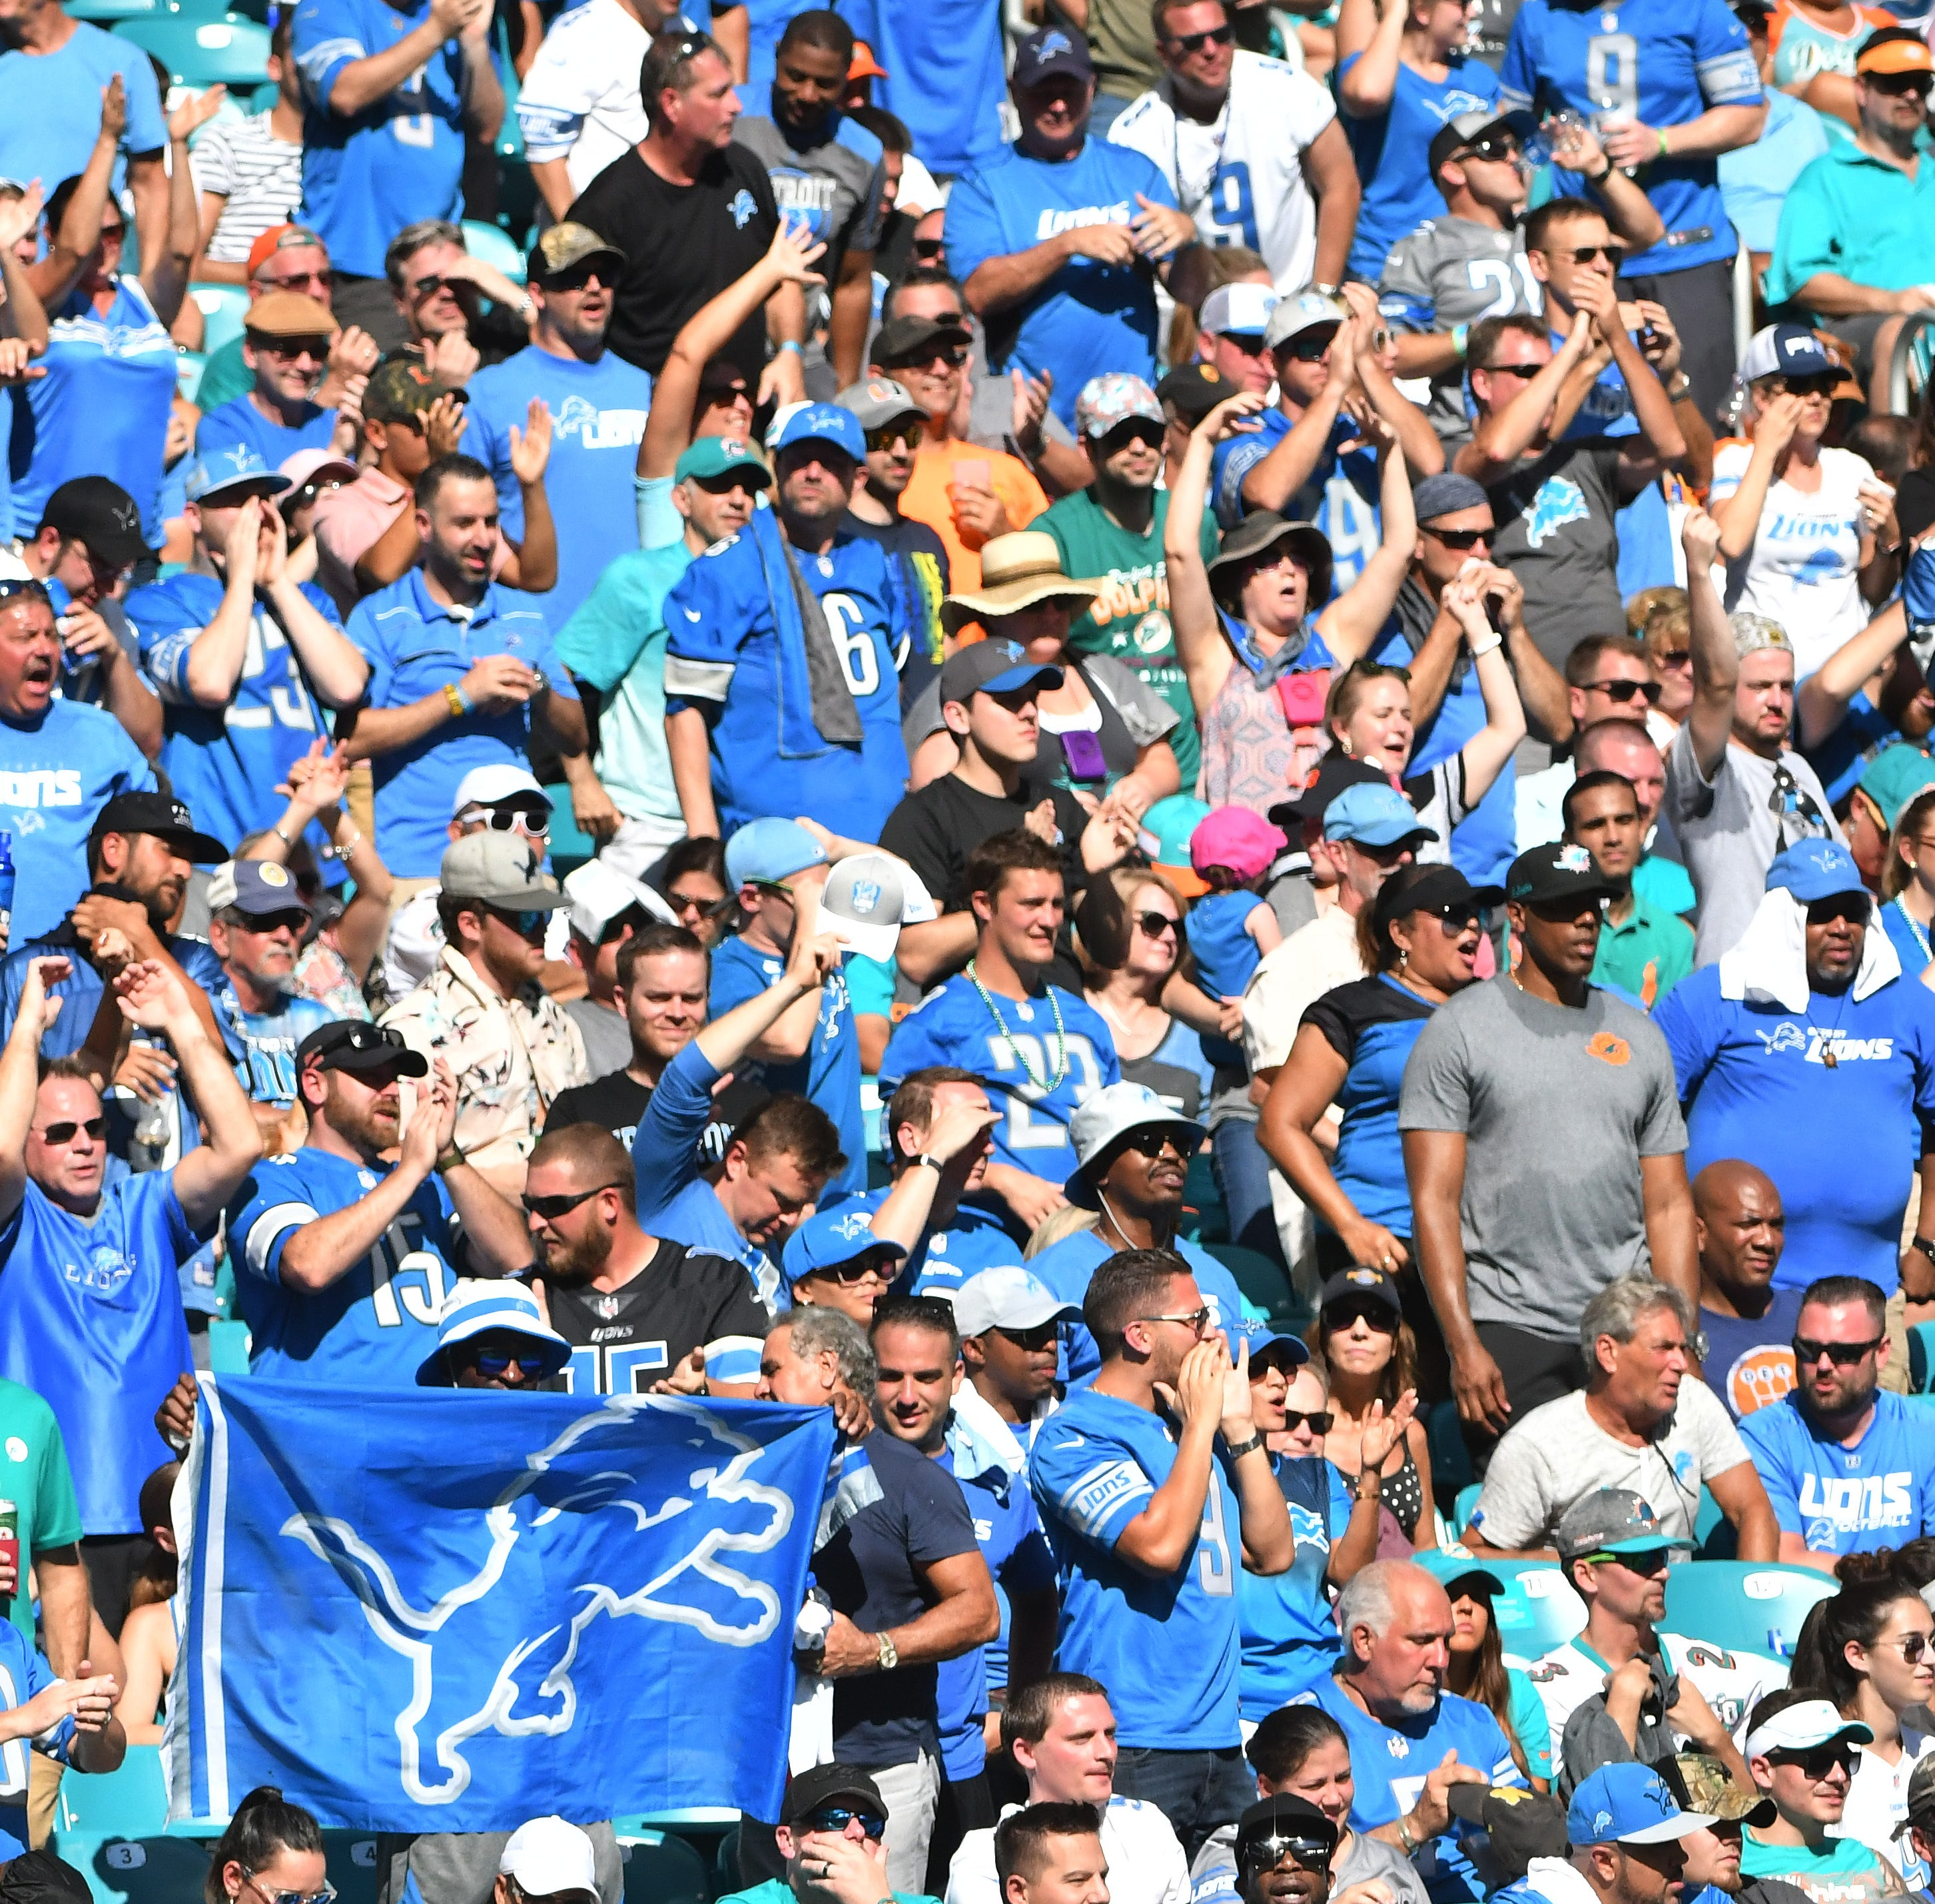 Lions feel love, 'energy' from true-blue fans in Miami